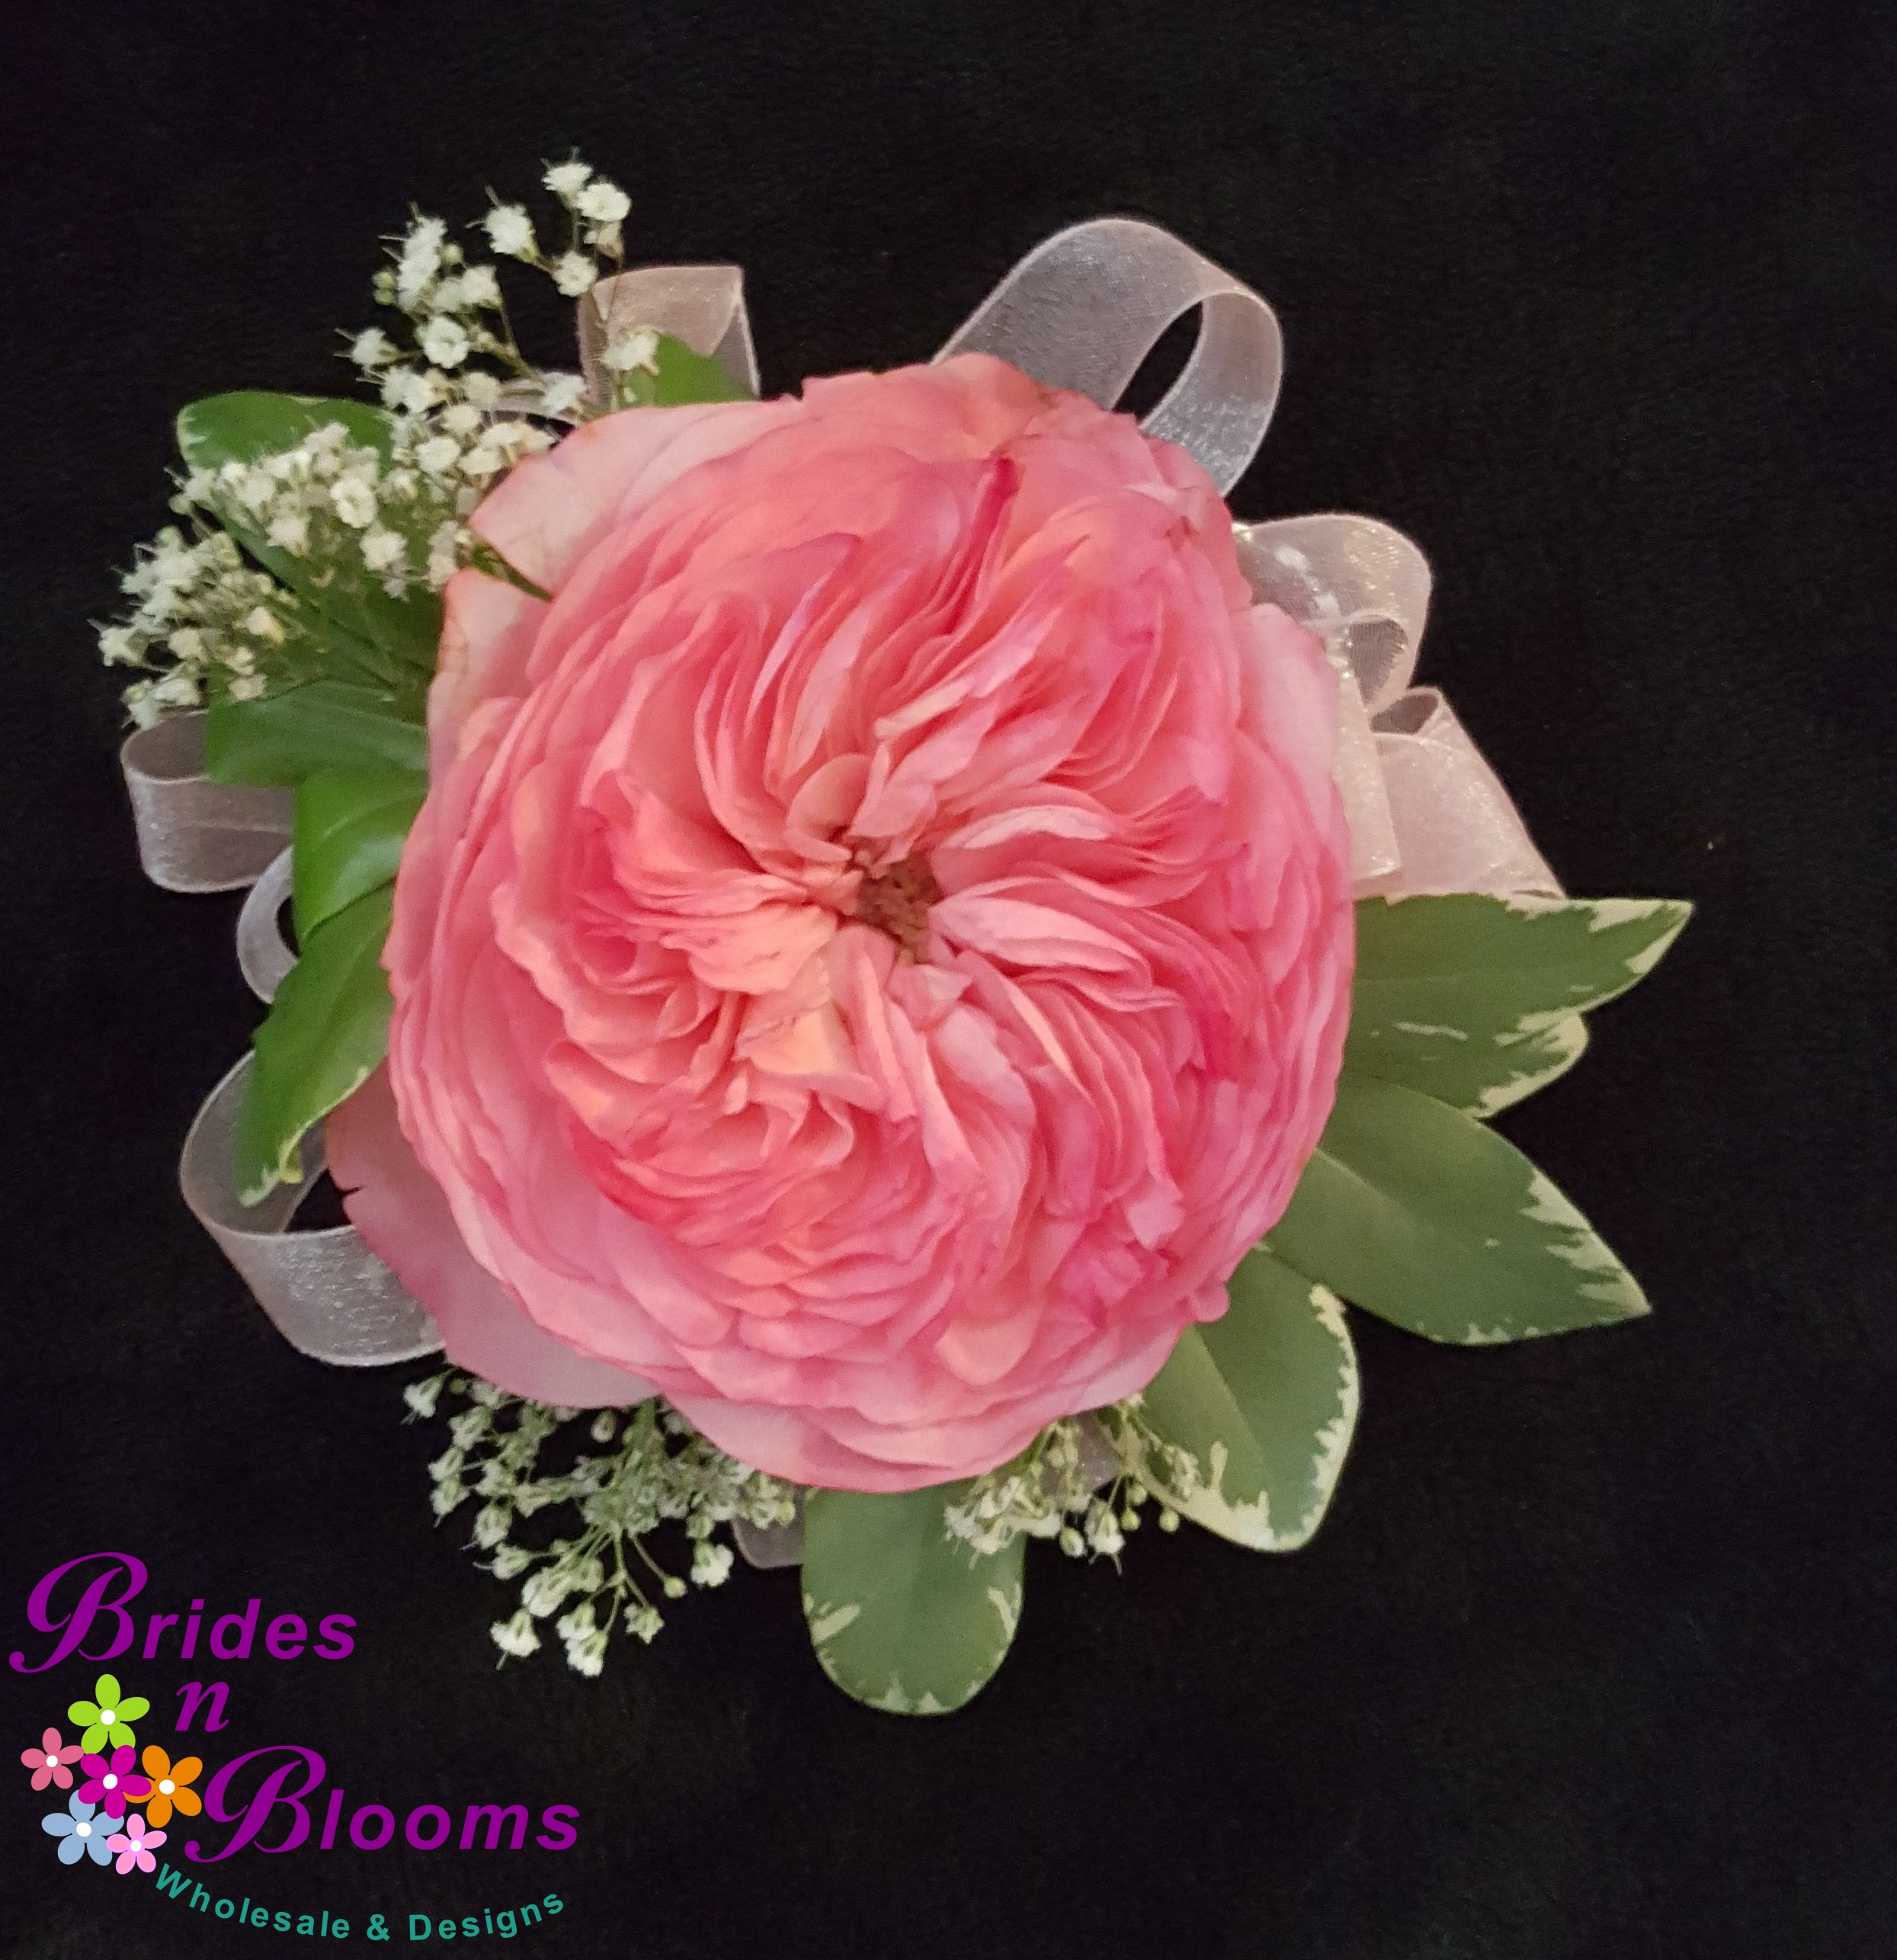 Boutonnieres, Corsages, Mini Bouquets, Bridal Additions - Brides N ...